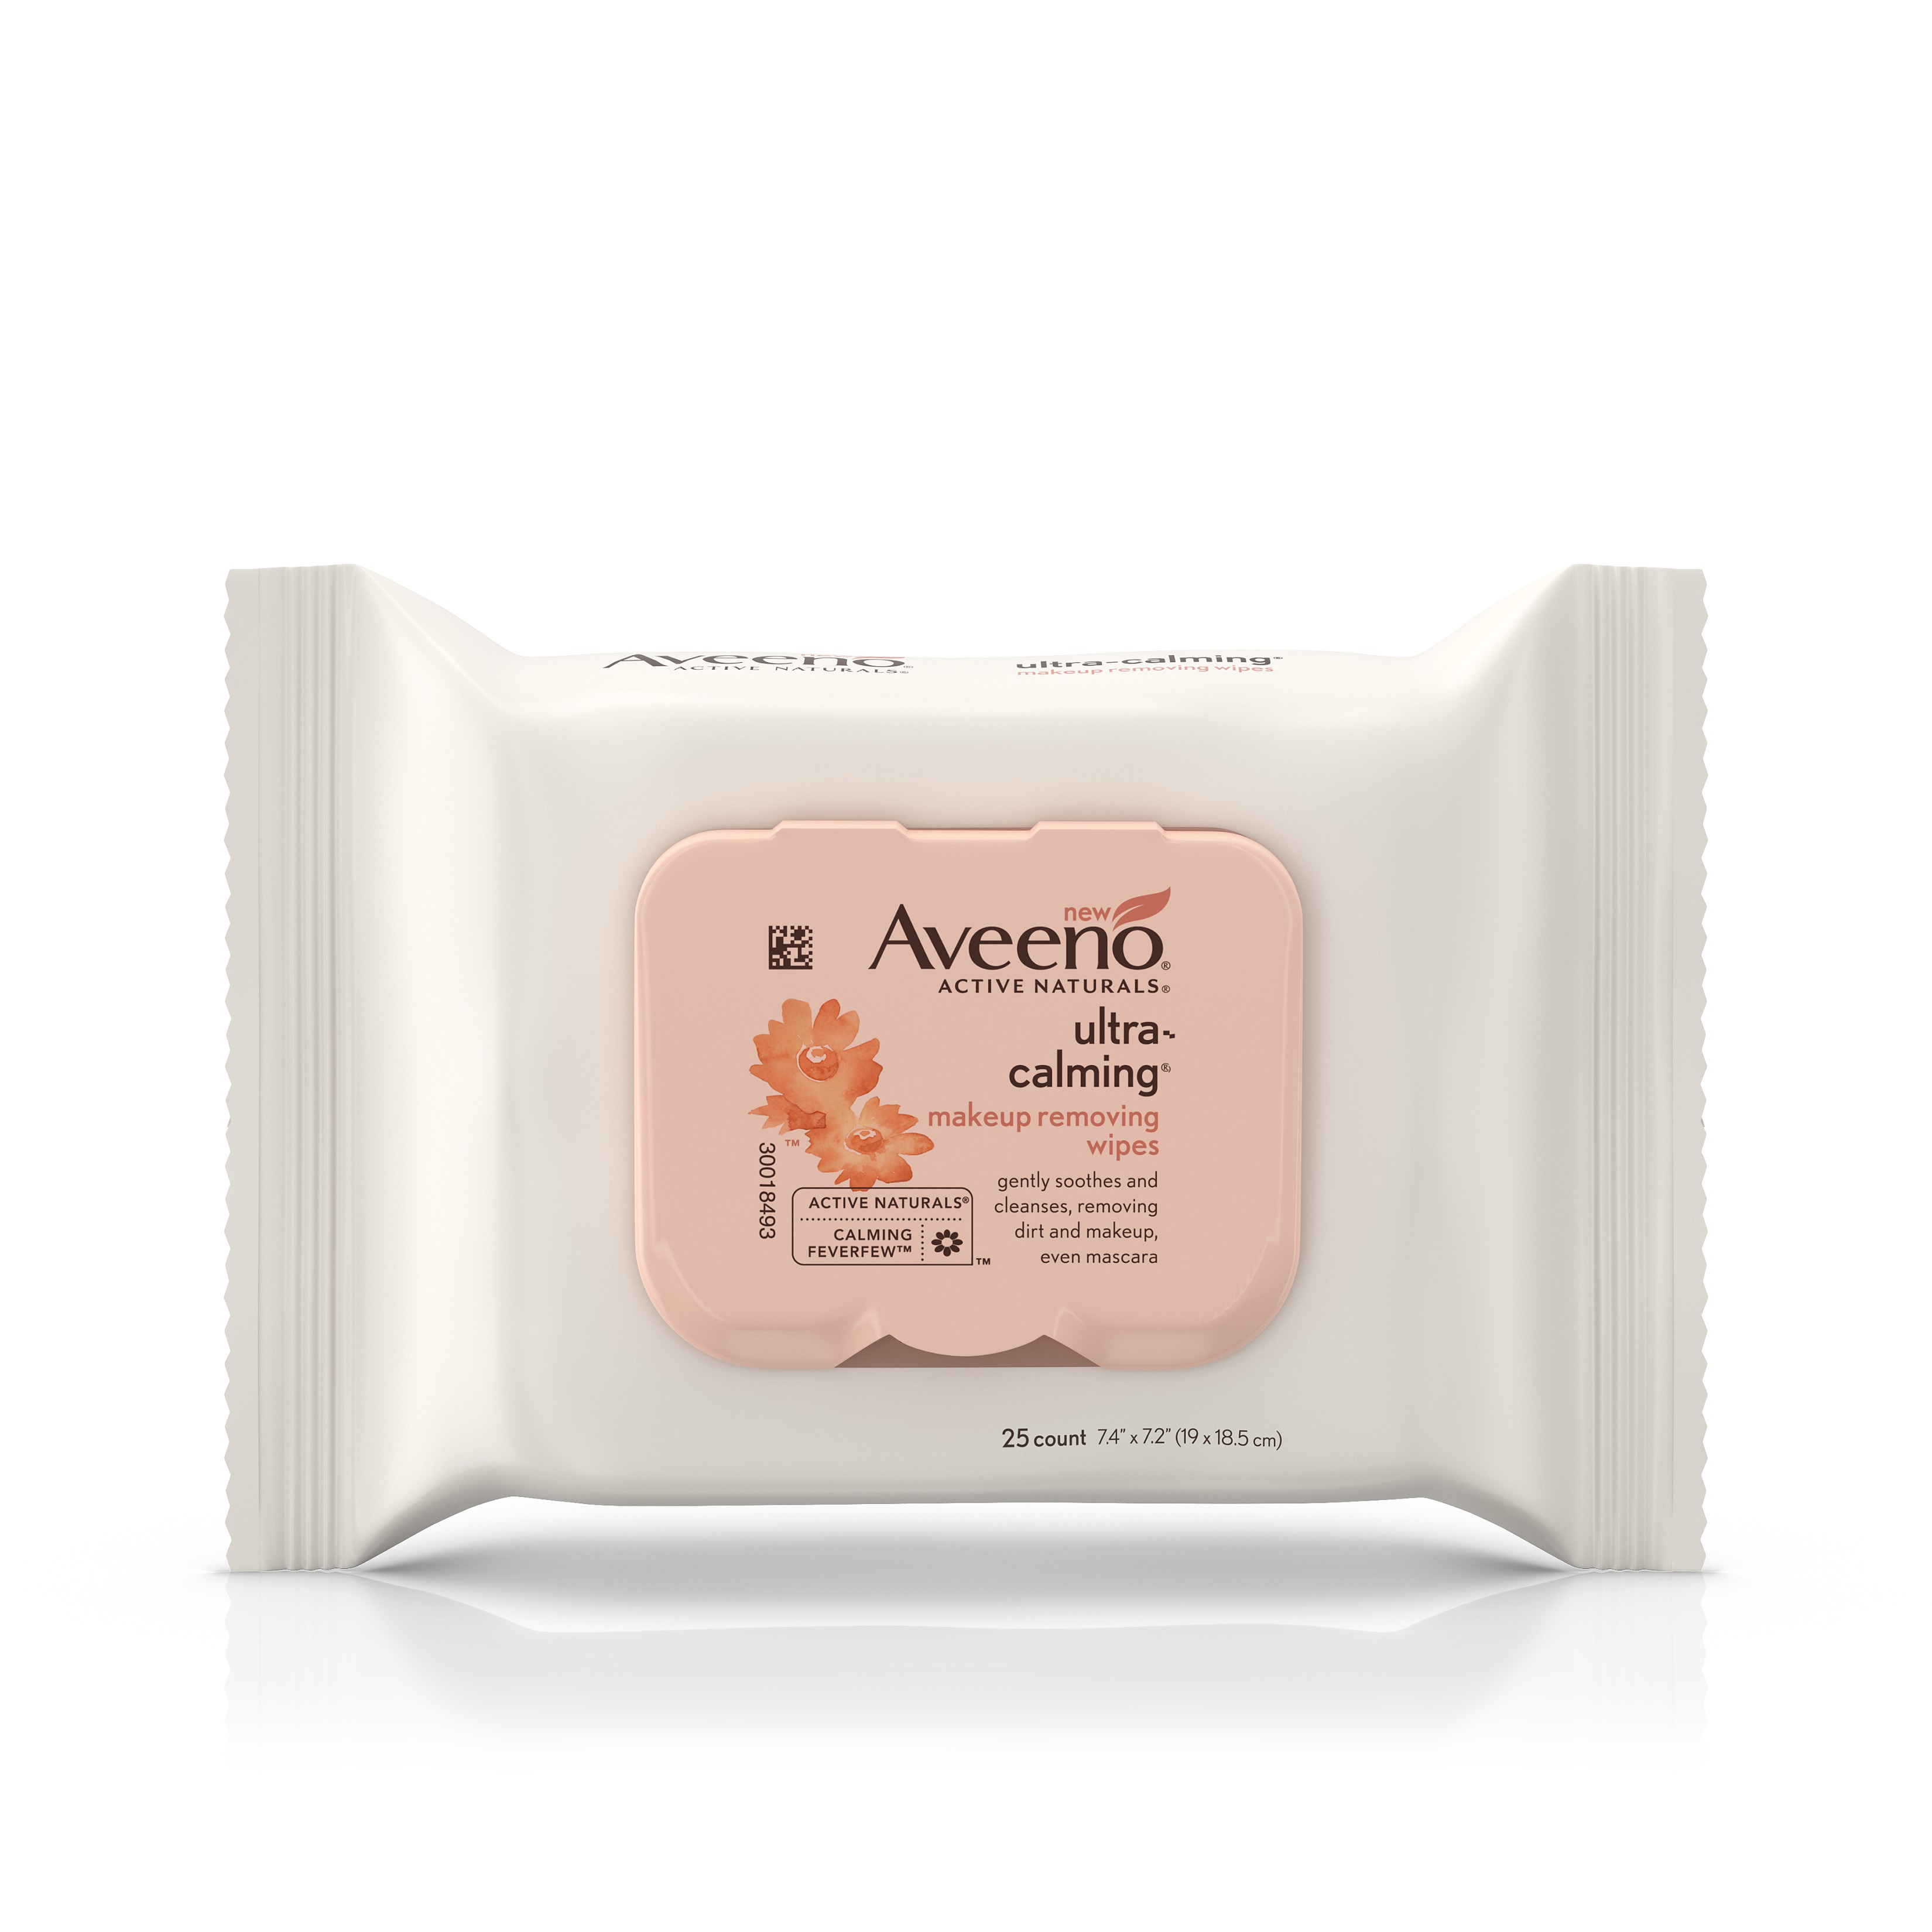 Aveeno Ultra-Calming Cleansing Oil-Free Makeup Removing Wipes for Sensitive Skin, 25 Count - Walmart.com